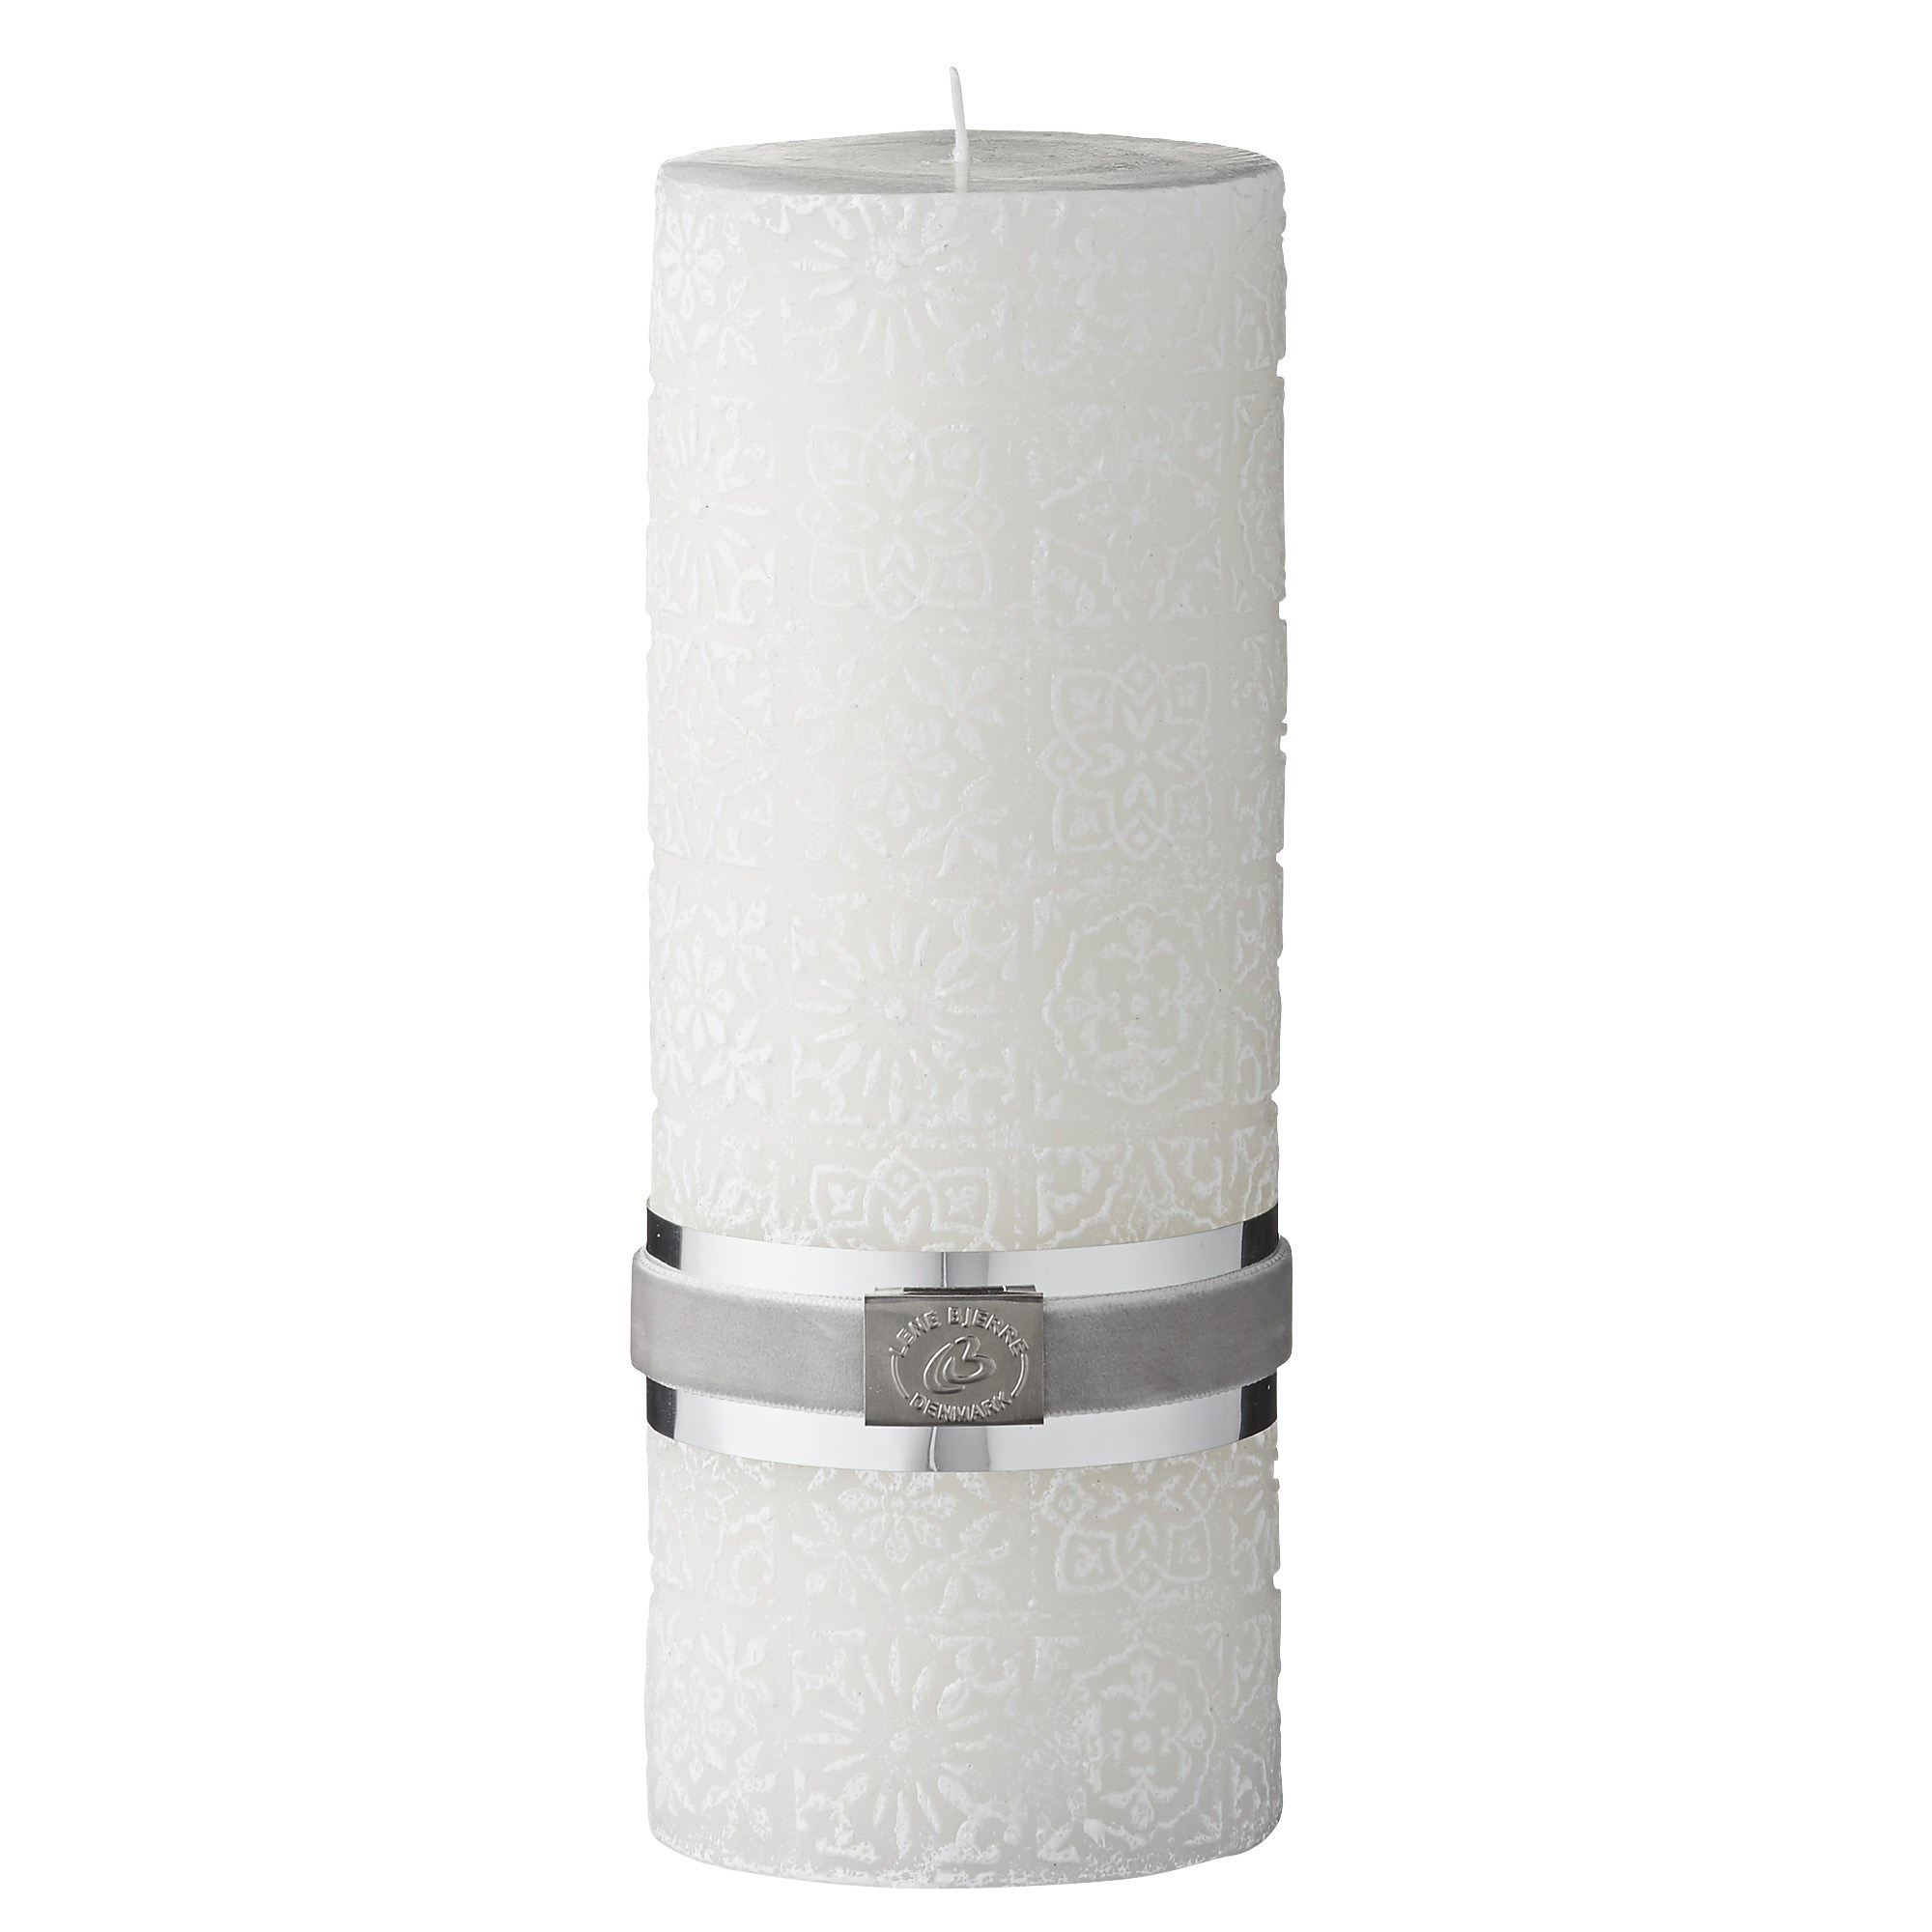 LENE BJERRE -  Tile White Pillar Candle 12.5 cm